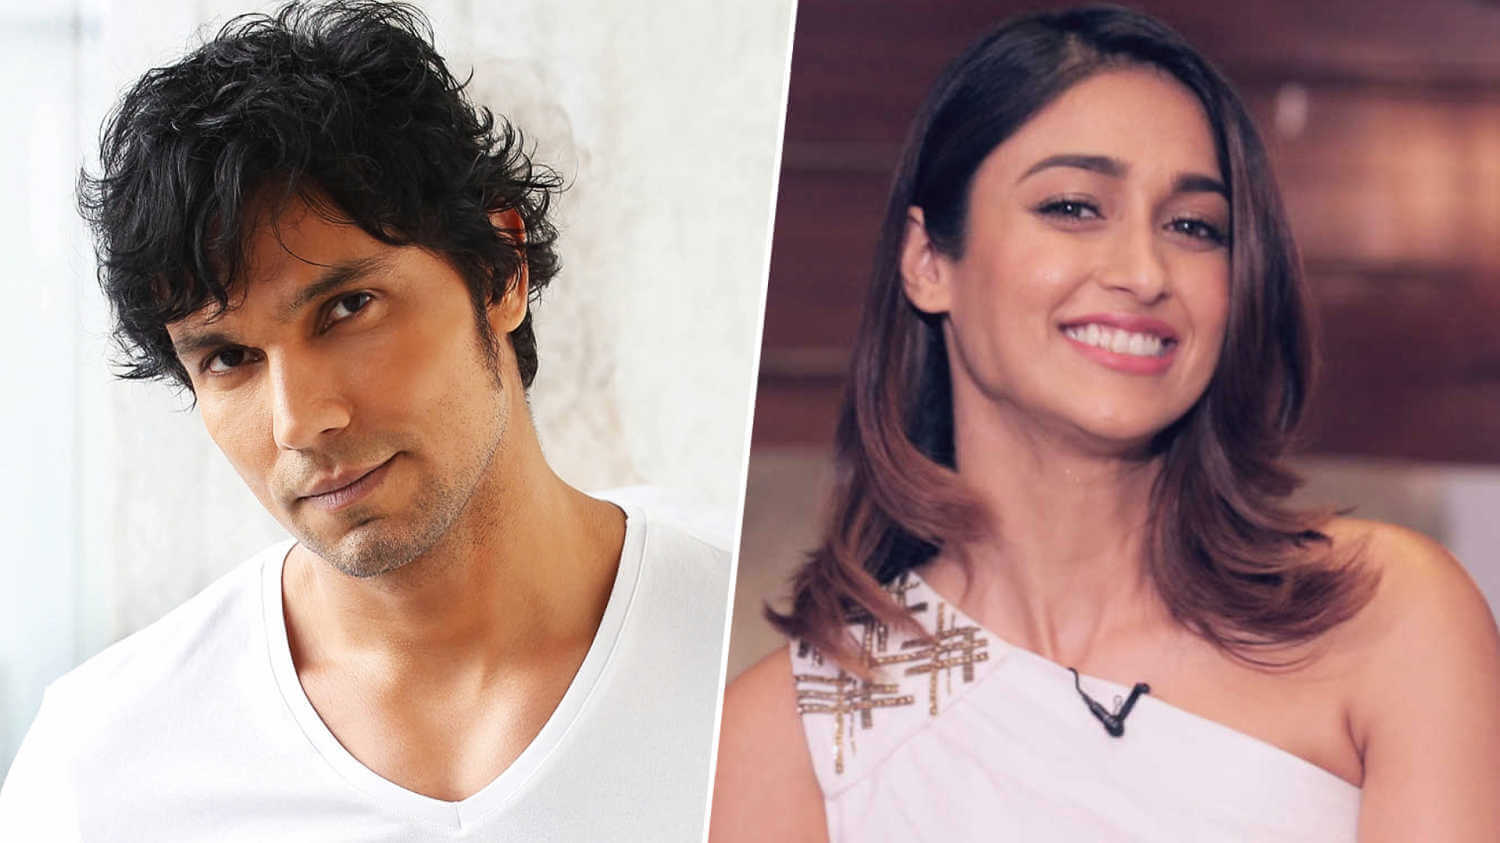 Randeep Hooda and Ileana D'Cruz to feature in a comedy titled